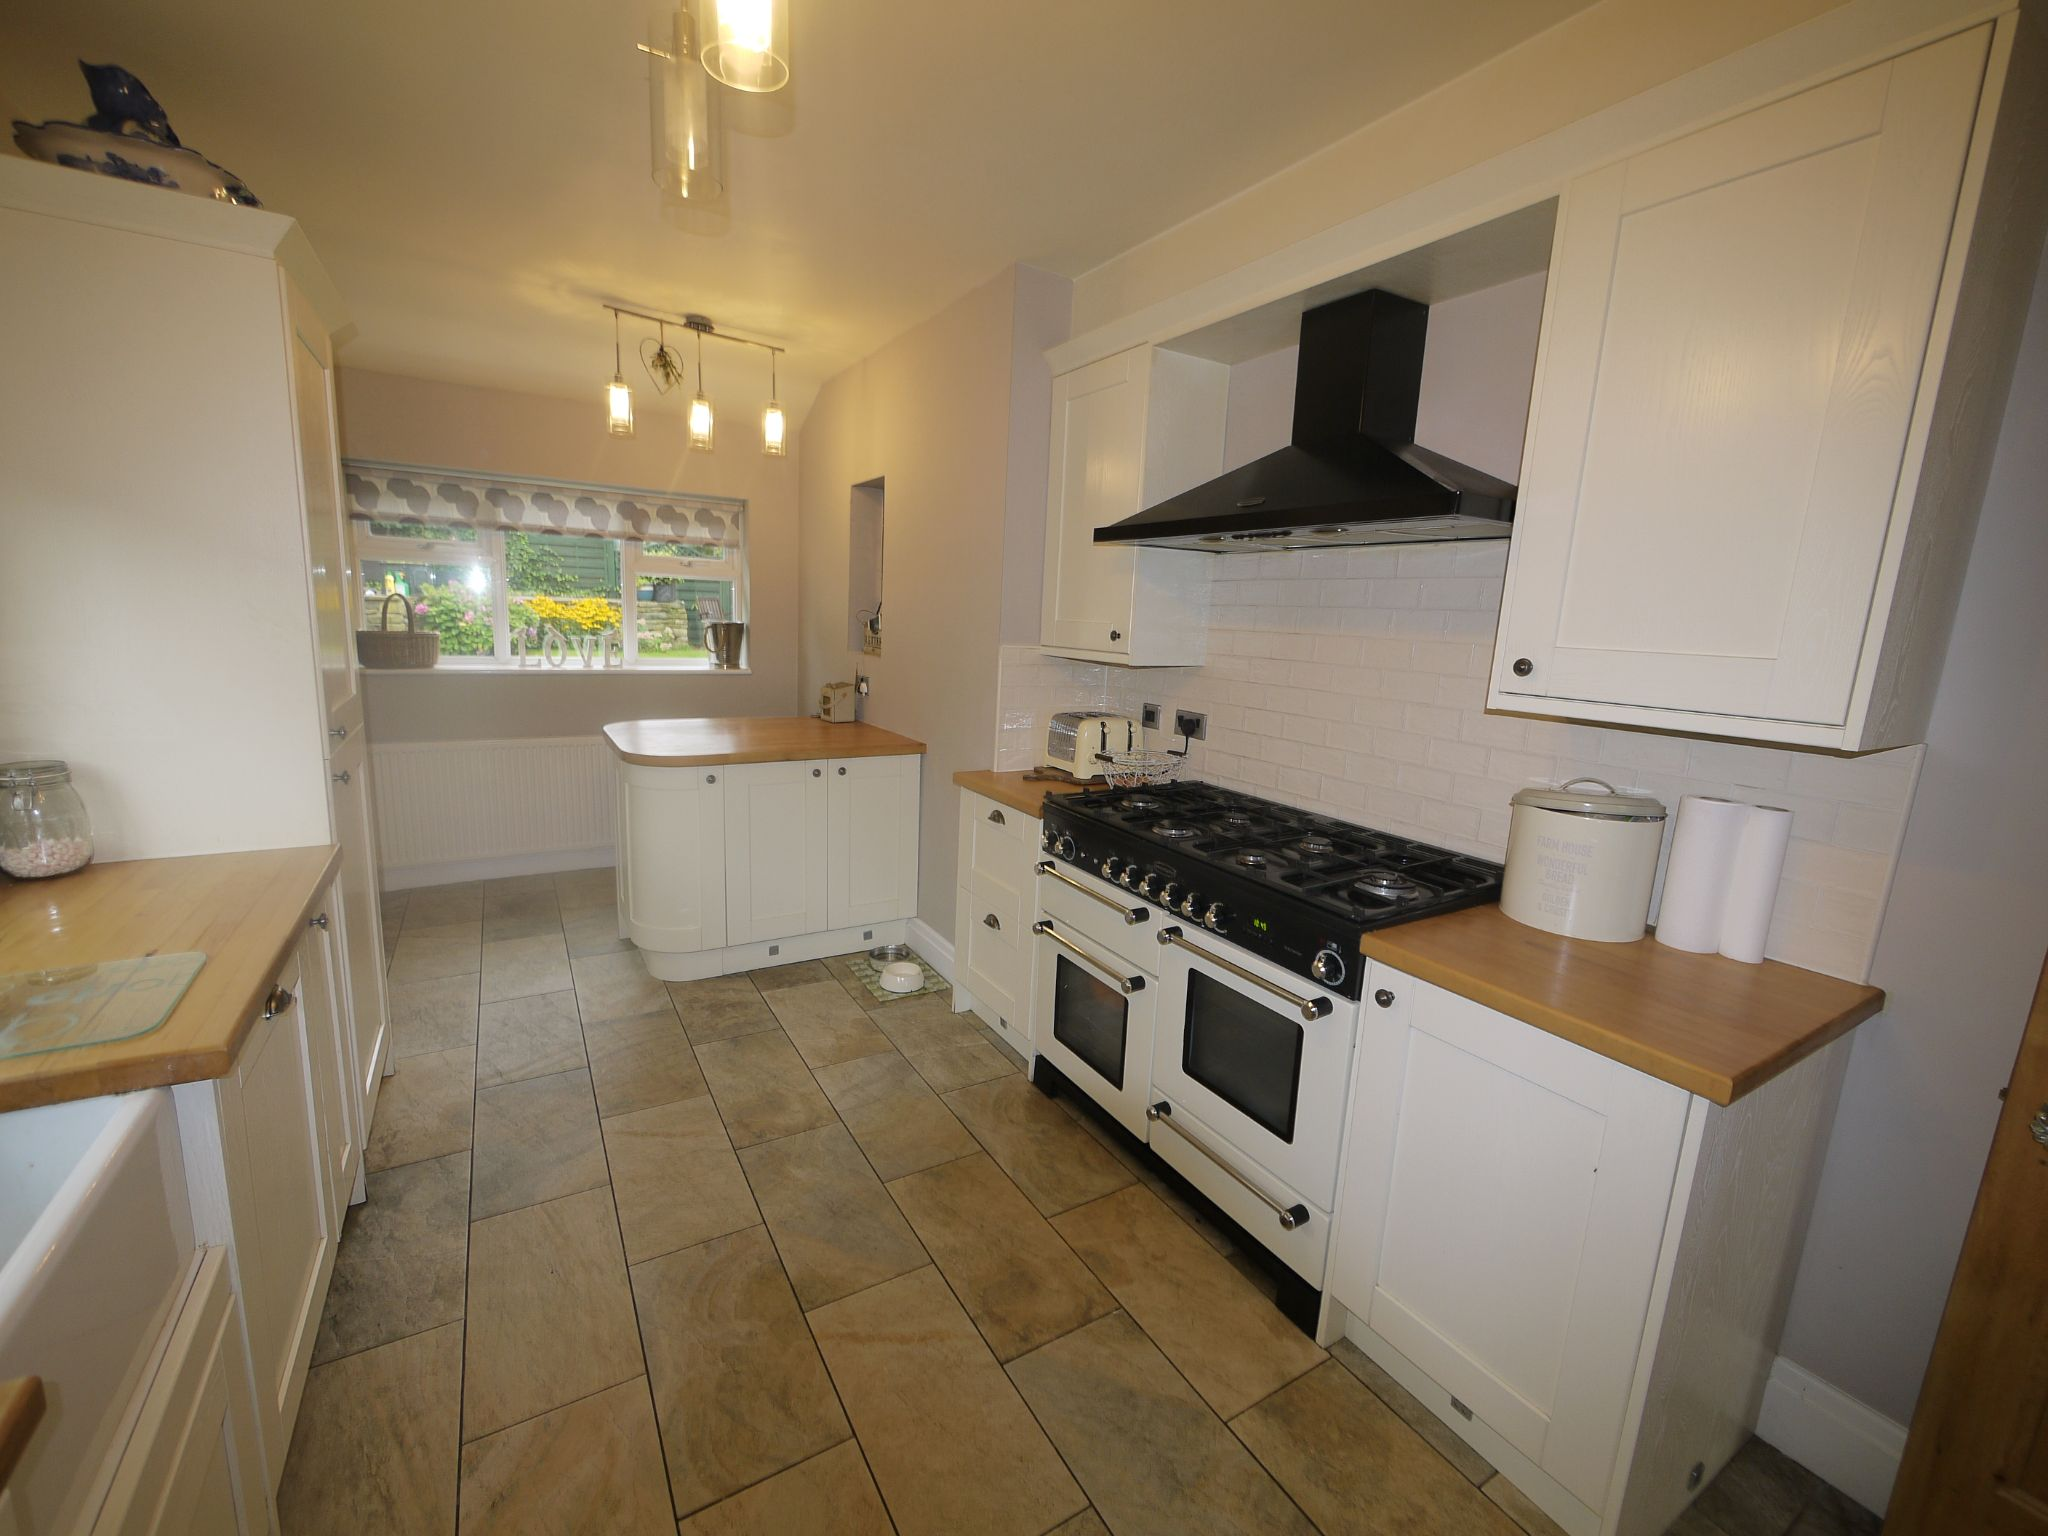 4 bedroom semi-detached house SSTC in Halifax - Kitchen 2.